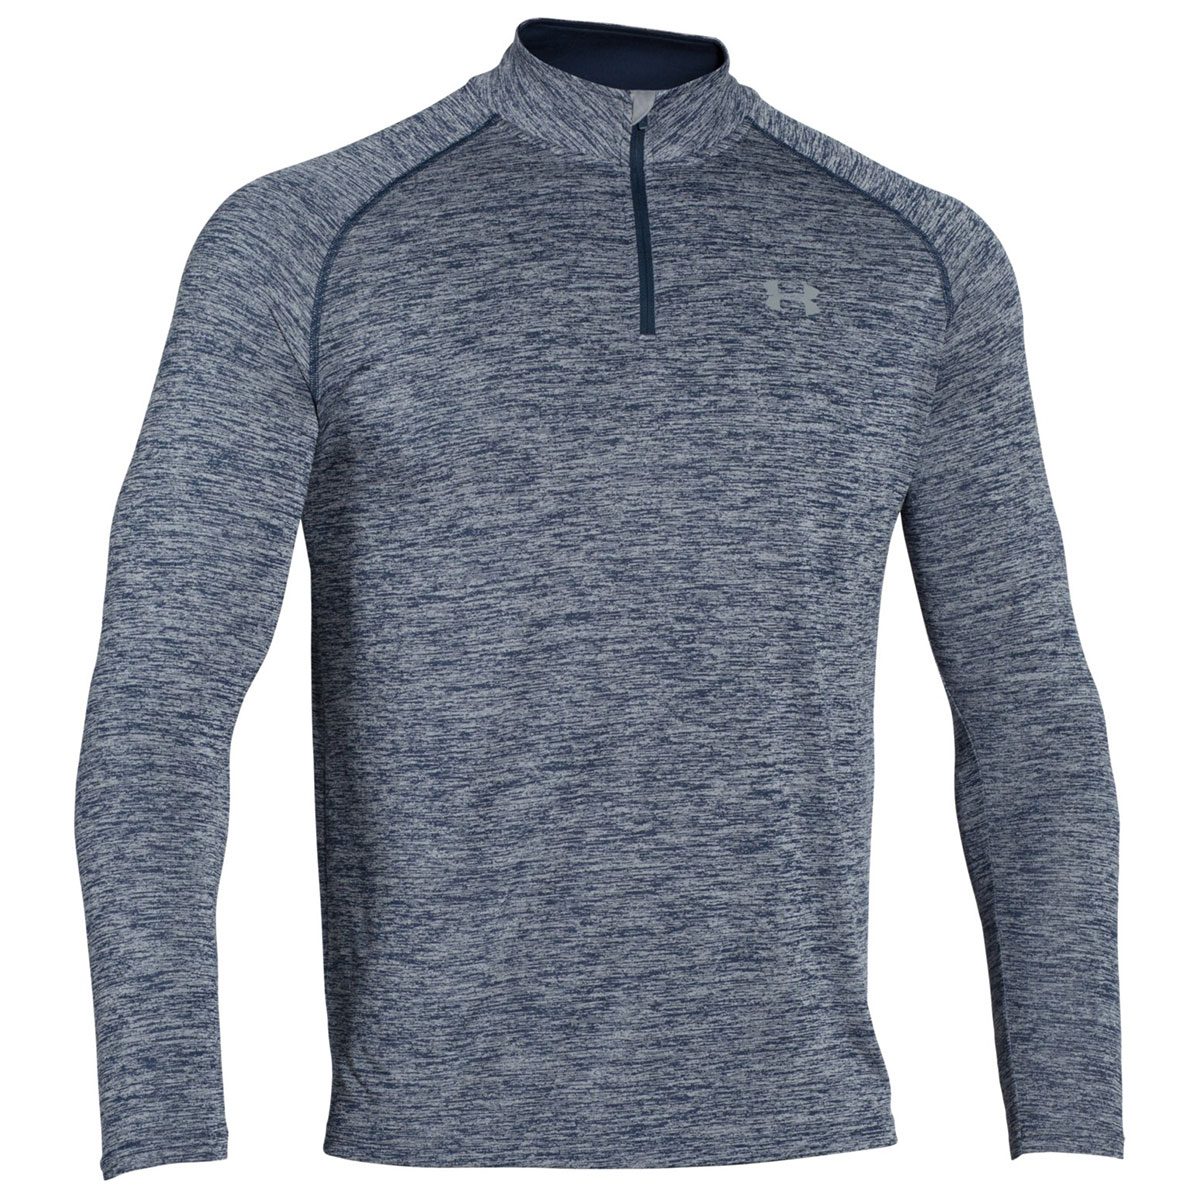 Under-Armour-Mens-UA-Tech-1-4-Zip-Long-Sleeve-Top-Workout-Layer-27-OFF-RRP thumbnail 4